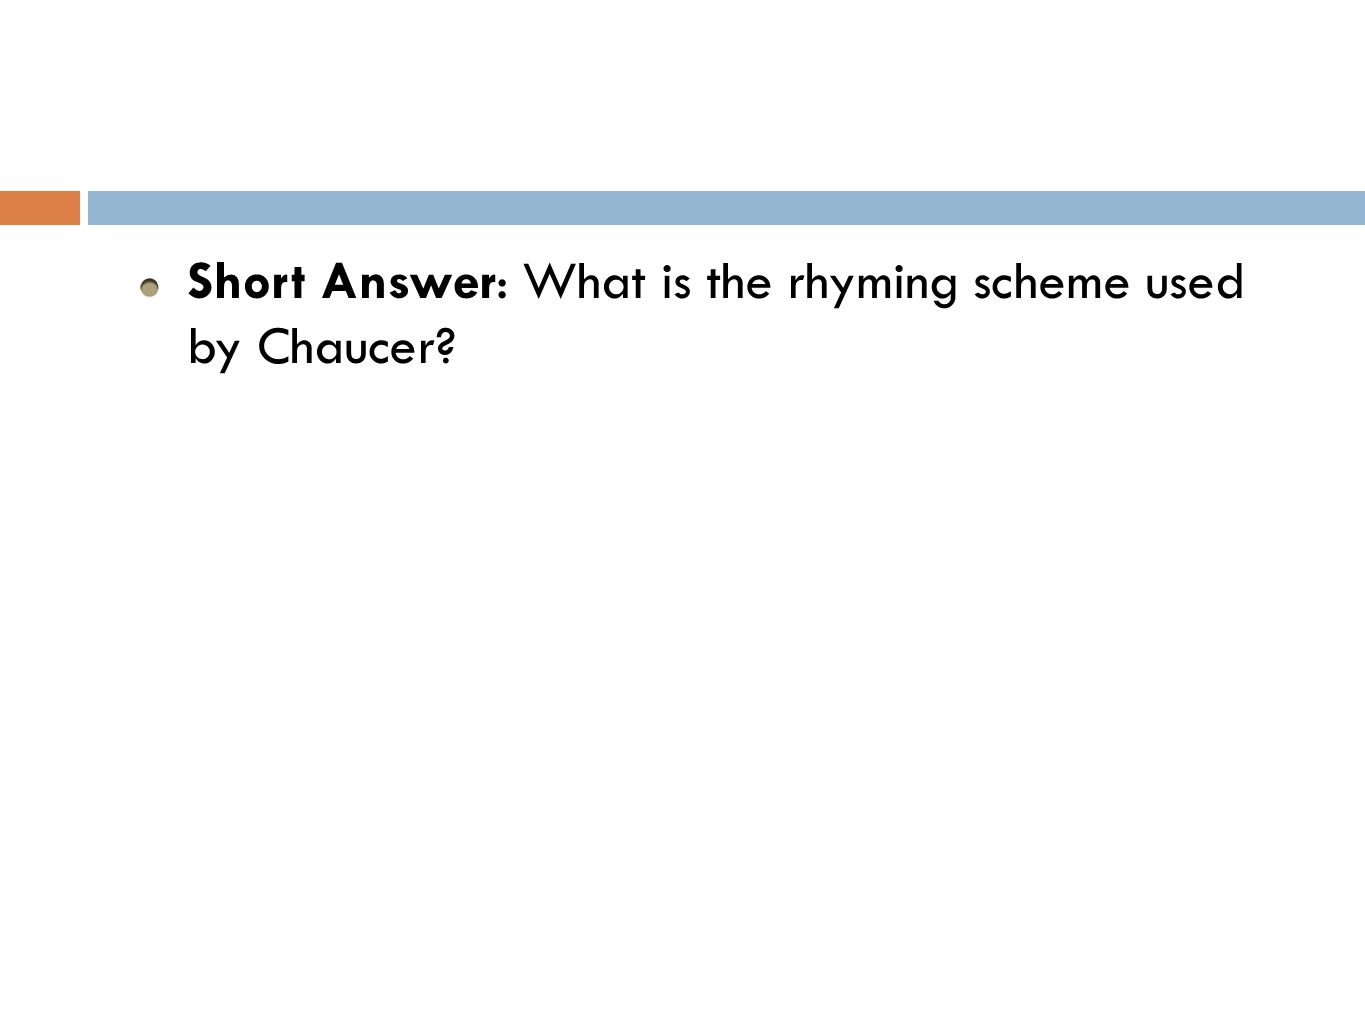 Short Answer: What is the rhyming scheme used by Chaucer